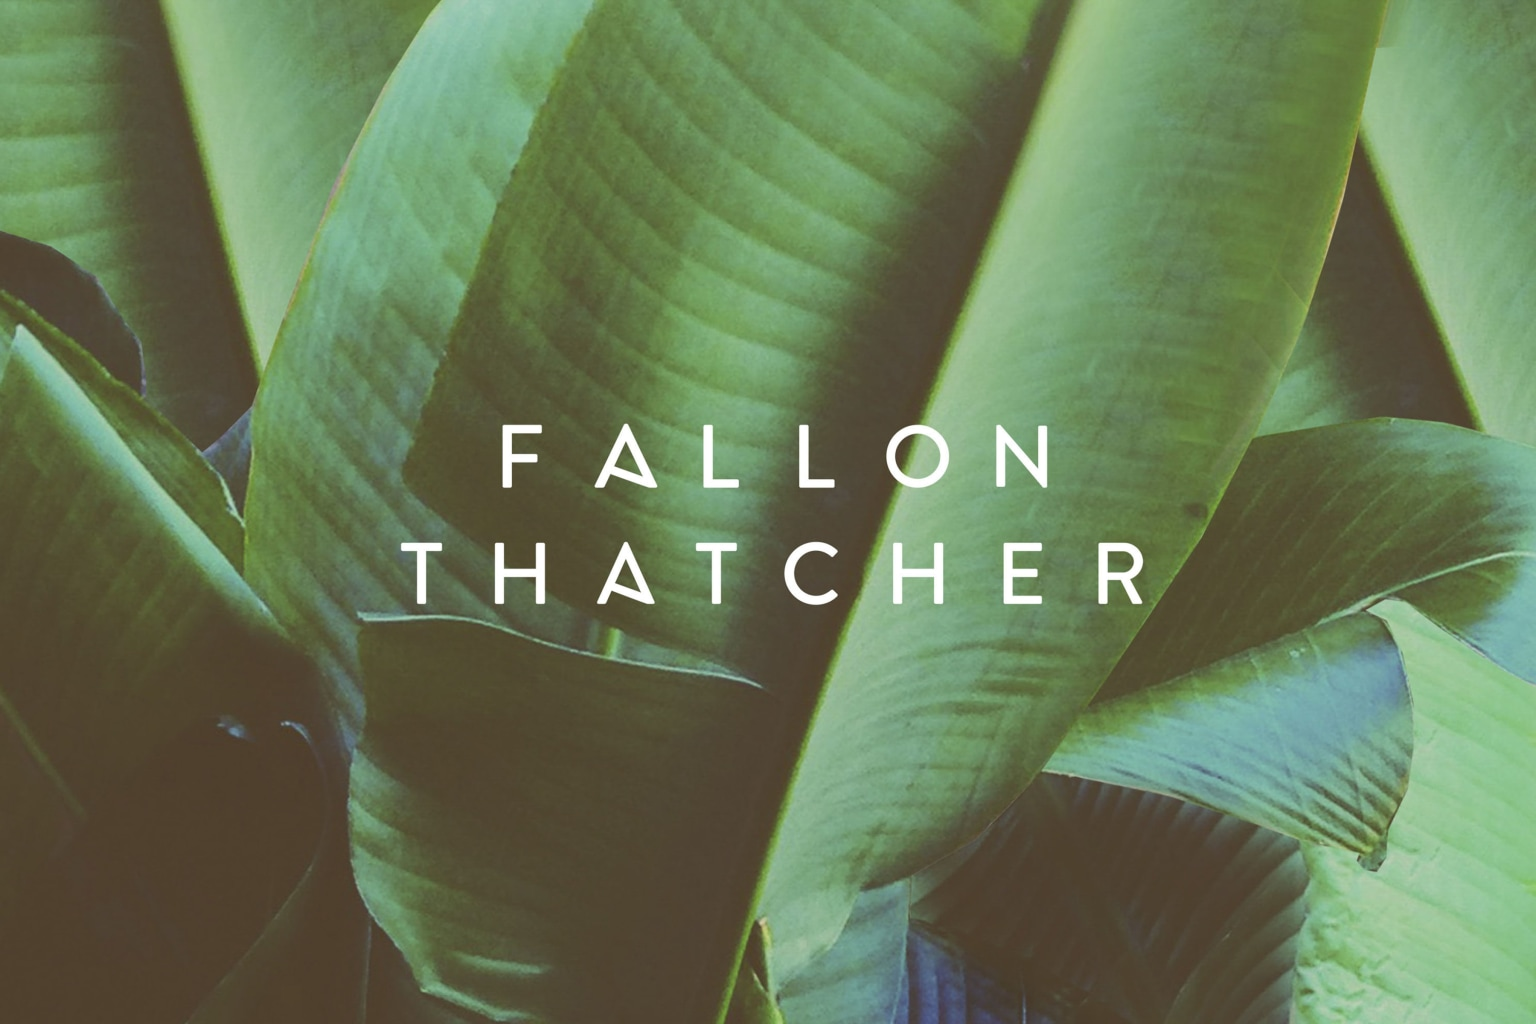 Fallon Thatcher